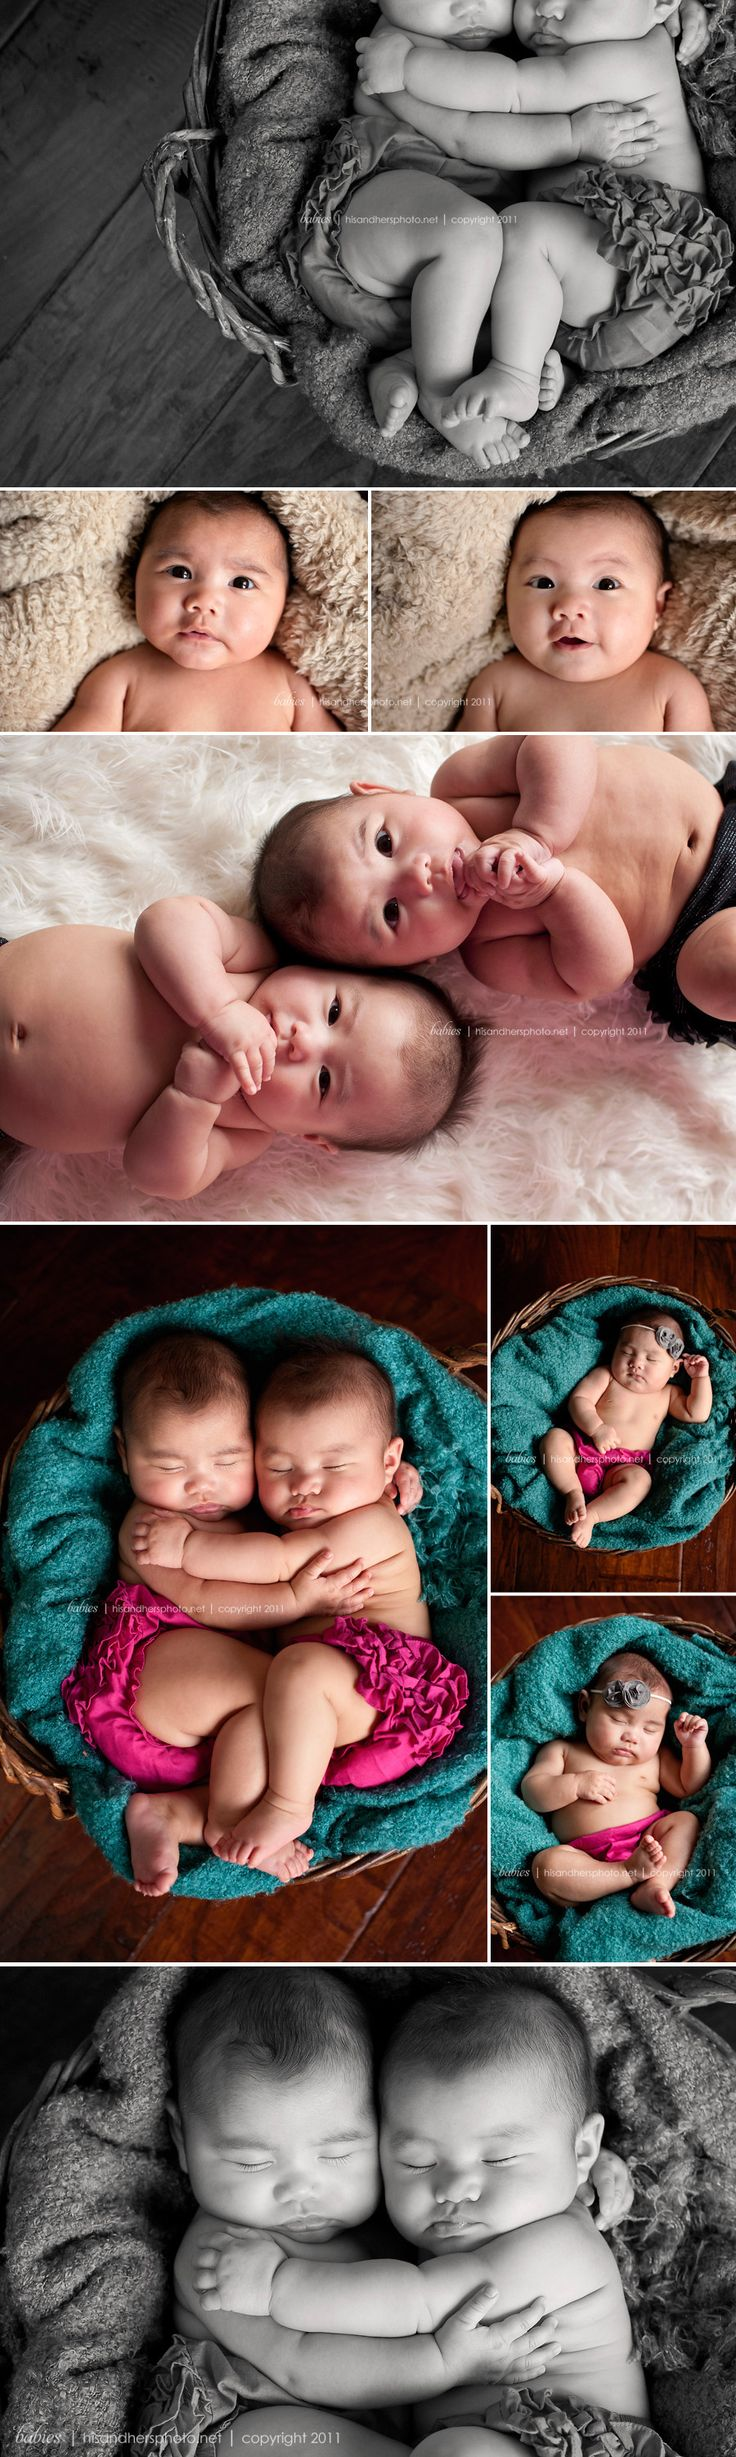 @Melanie McWilliams 3 month old twins Love the last one.